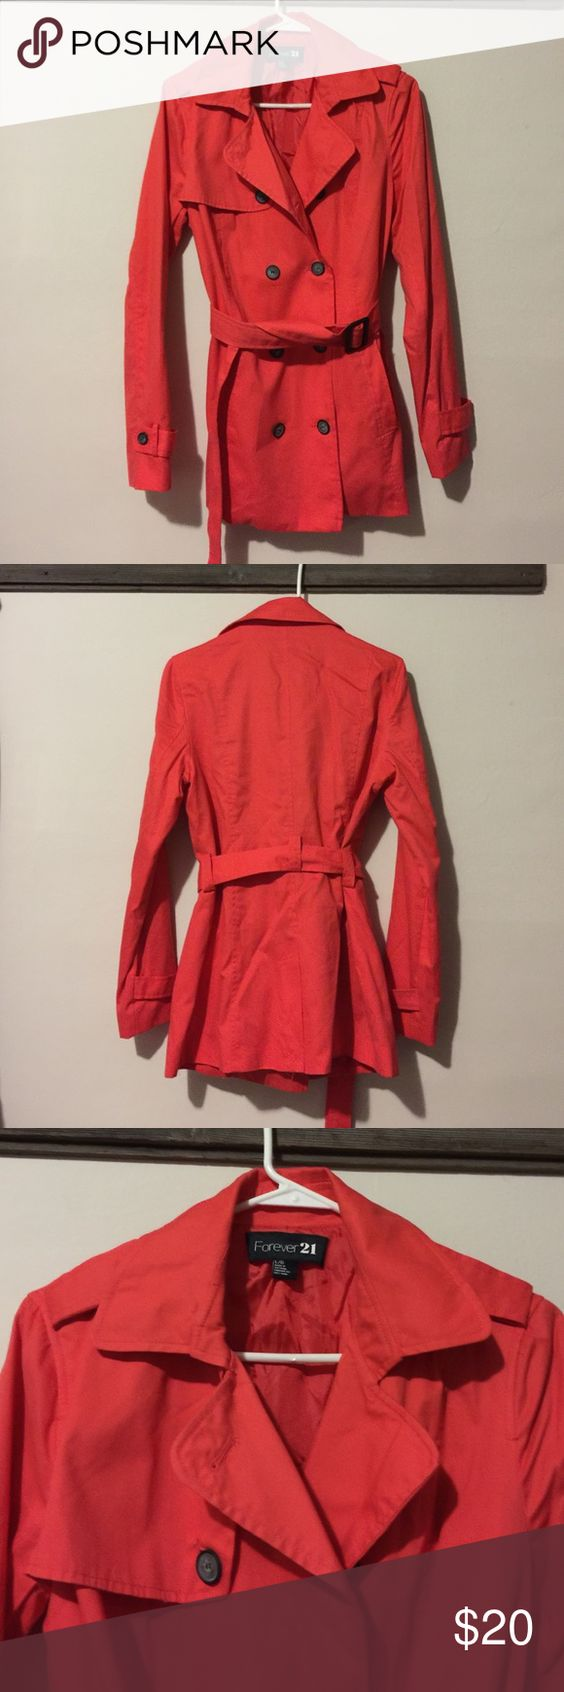 Forever 21 Jacket Large Forever 21 Jacket in excellent condition! Forever 21 Jackets & Coats Pea Coats